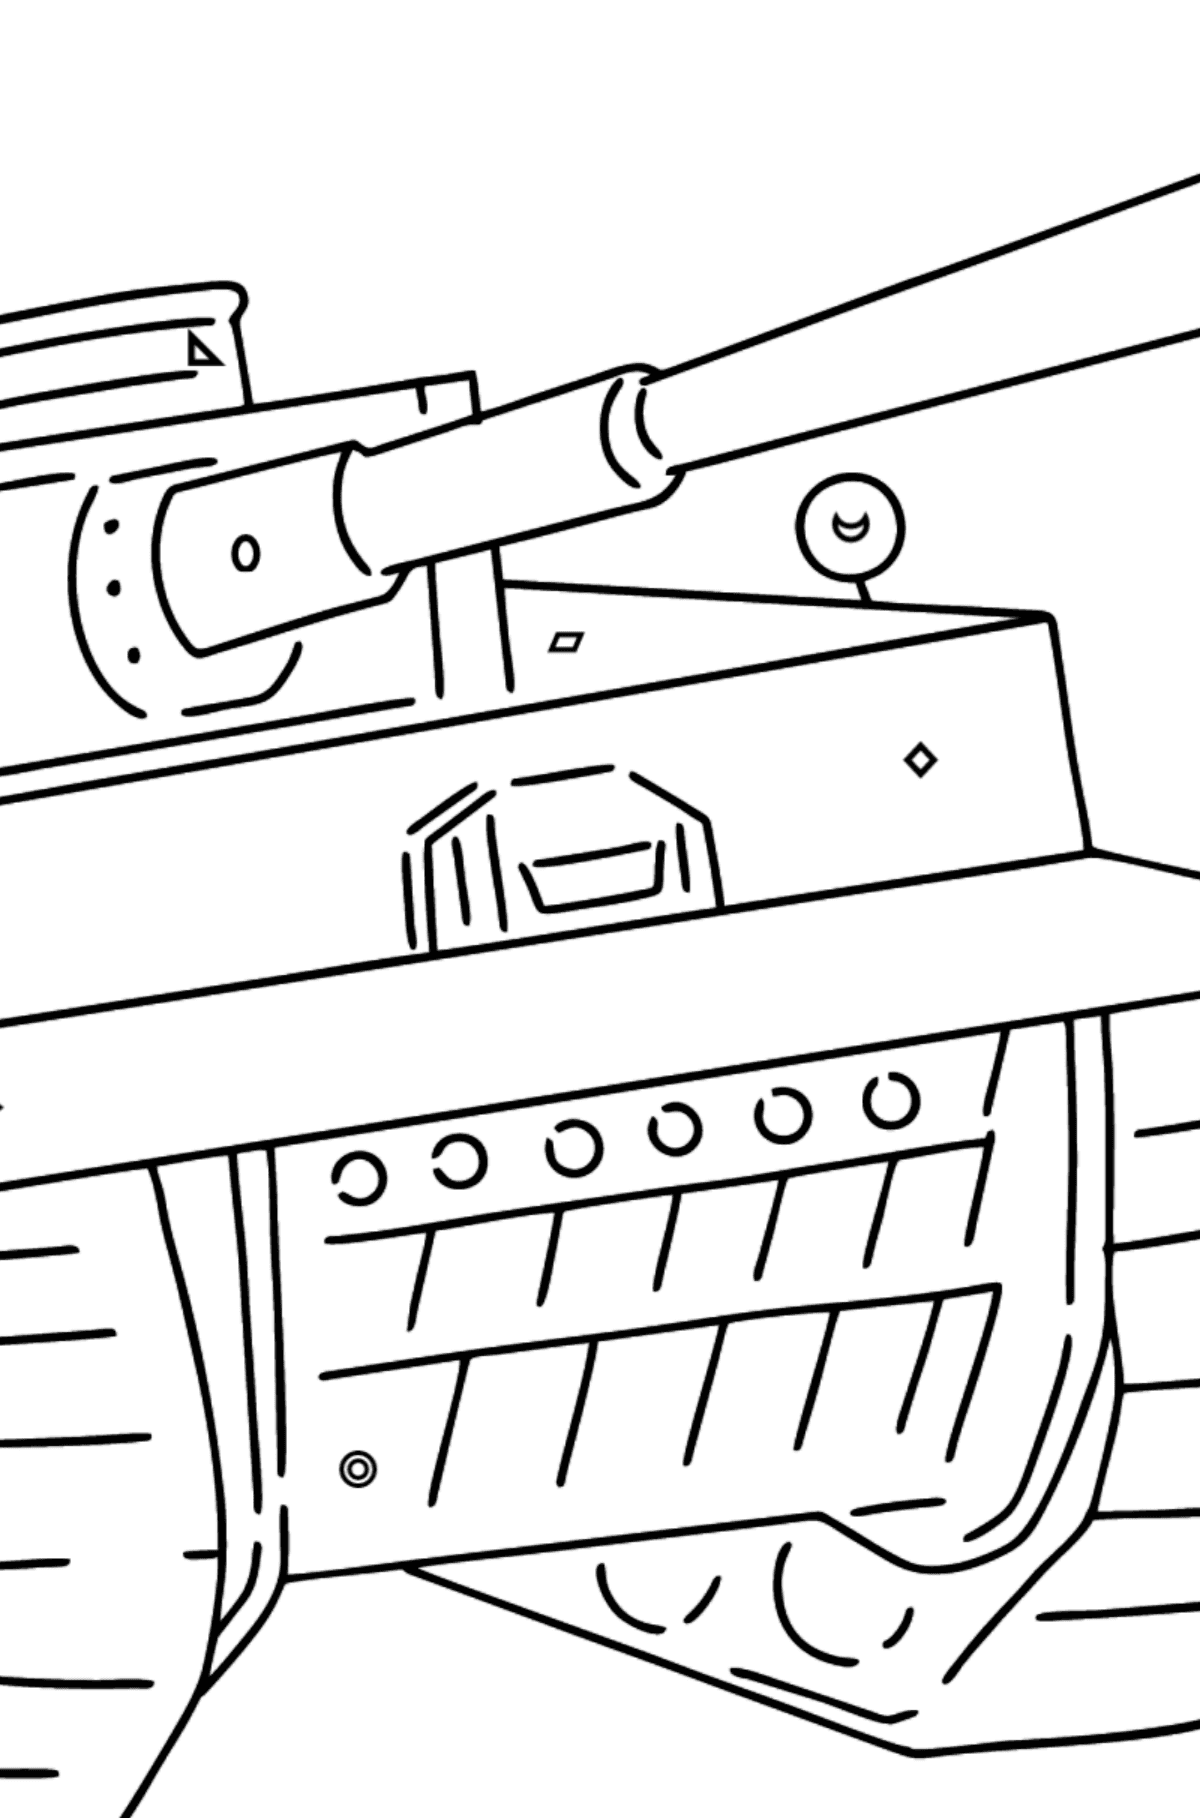 Tank Panther coloring page - Coloring by Geometric Shapes for Kids